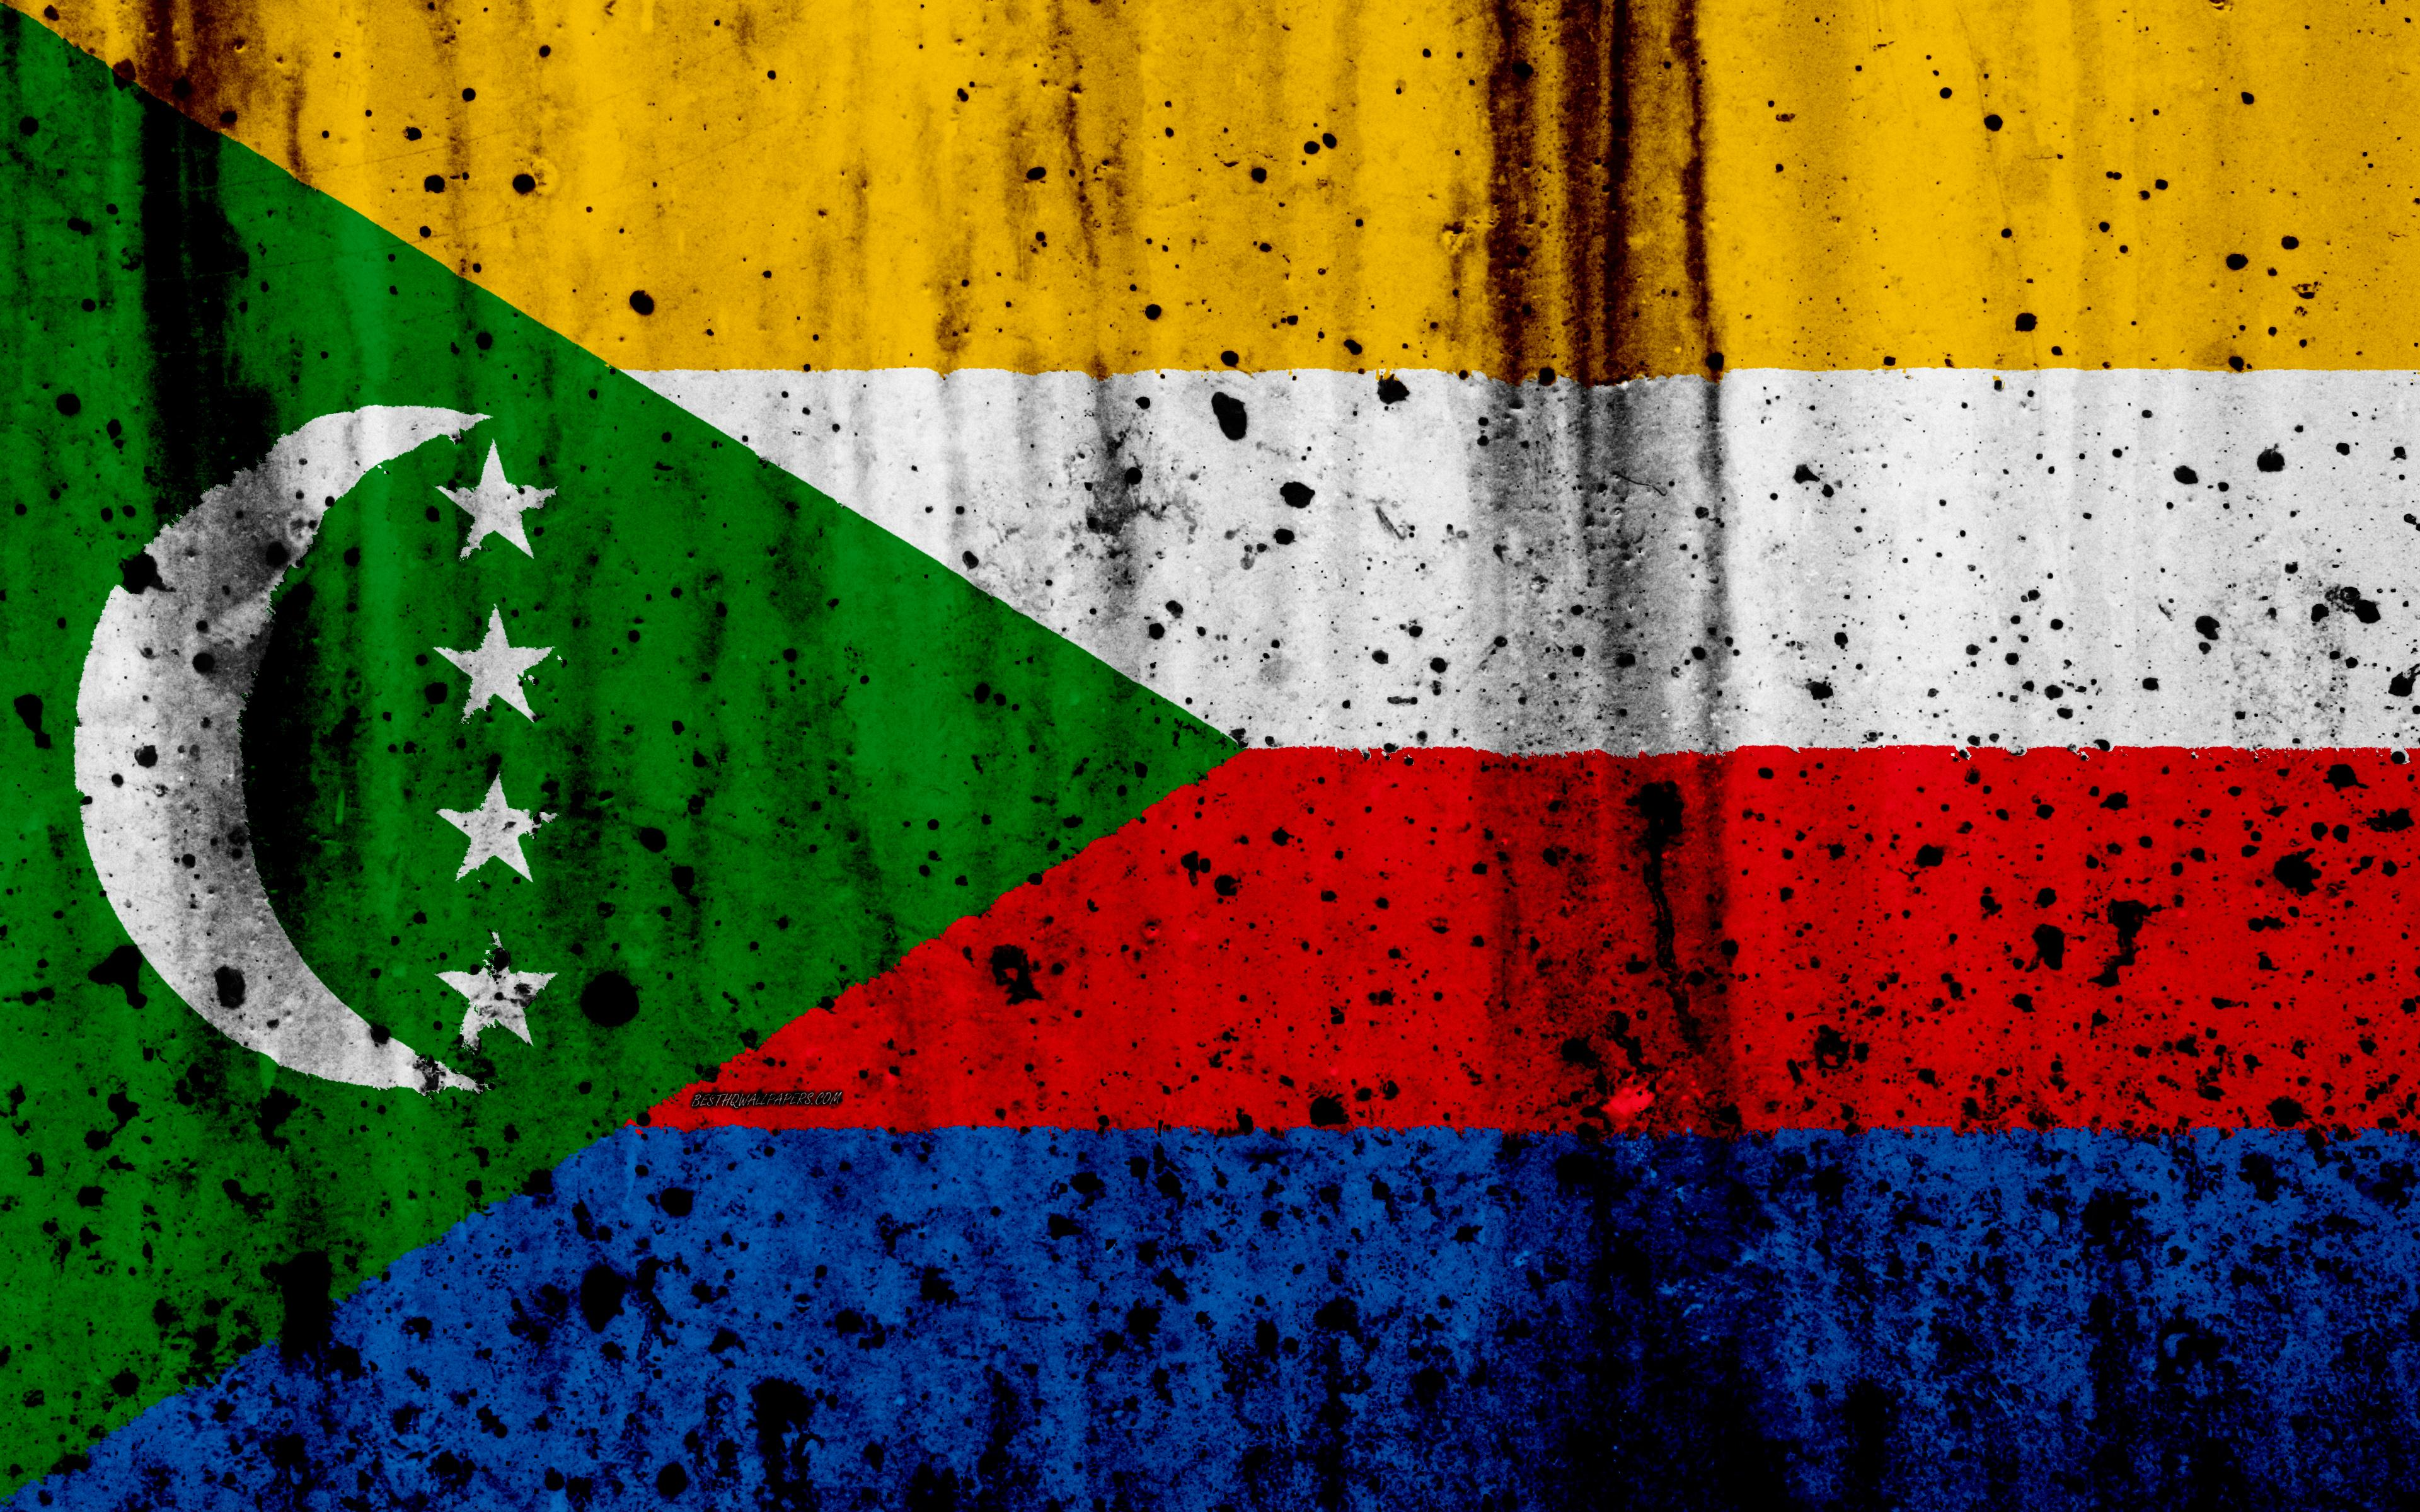 Download wallpapers Comoros flag, 4k, grunge, Comoros of Benin